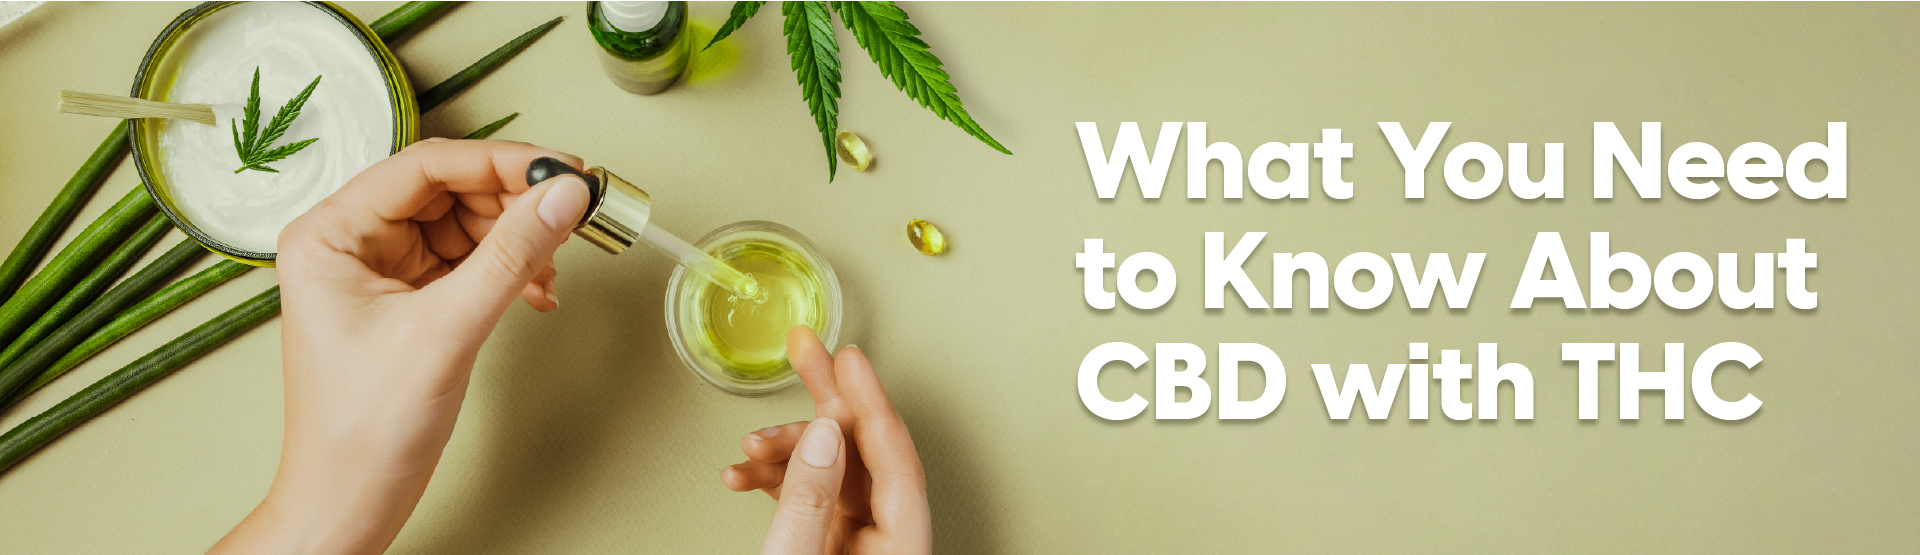 What You Need to Know About CBD With THC - Image of CBD oil